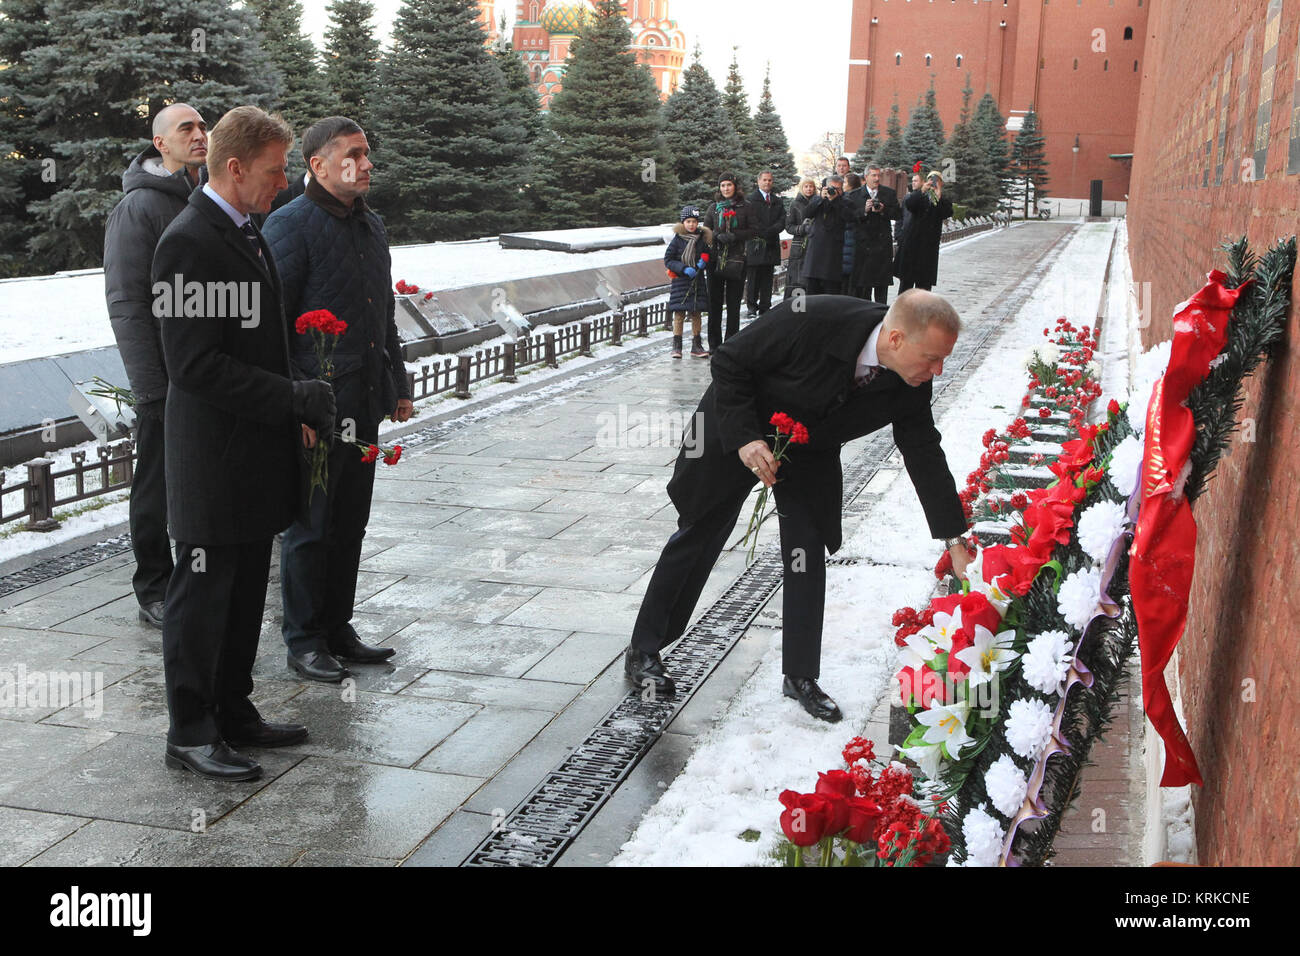 At the Kremlin Wall in Red Square in Moscow, Expedition 46-47 crewmember Tim Kopra of NASA lays flowers at the site - Stock Image